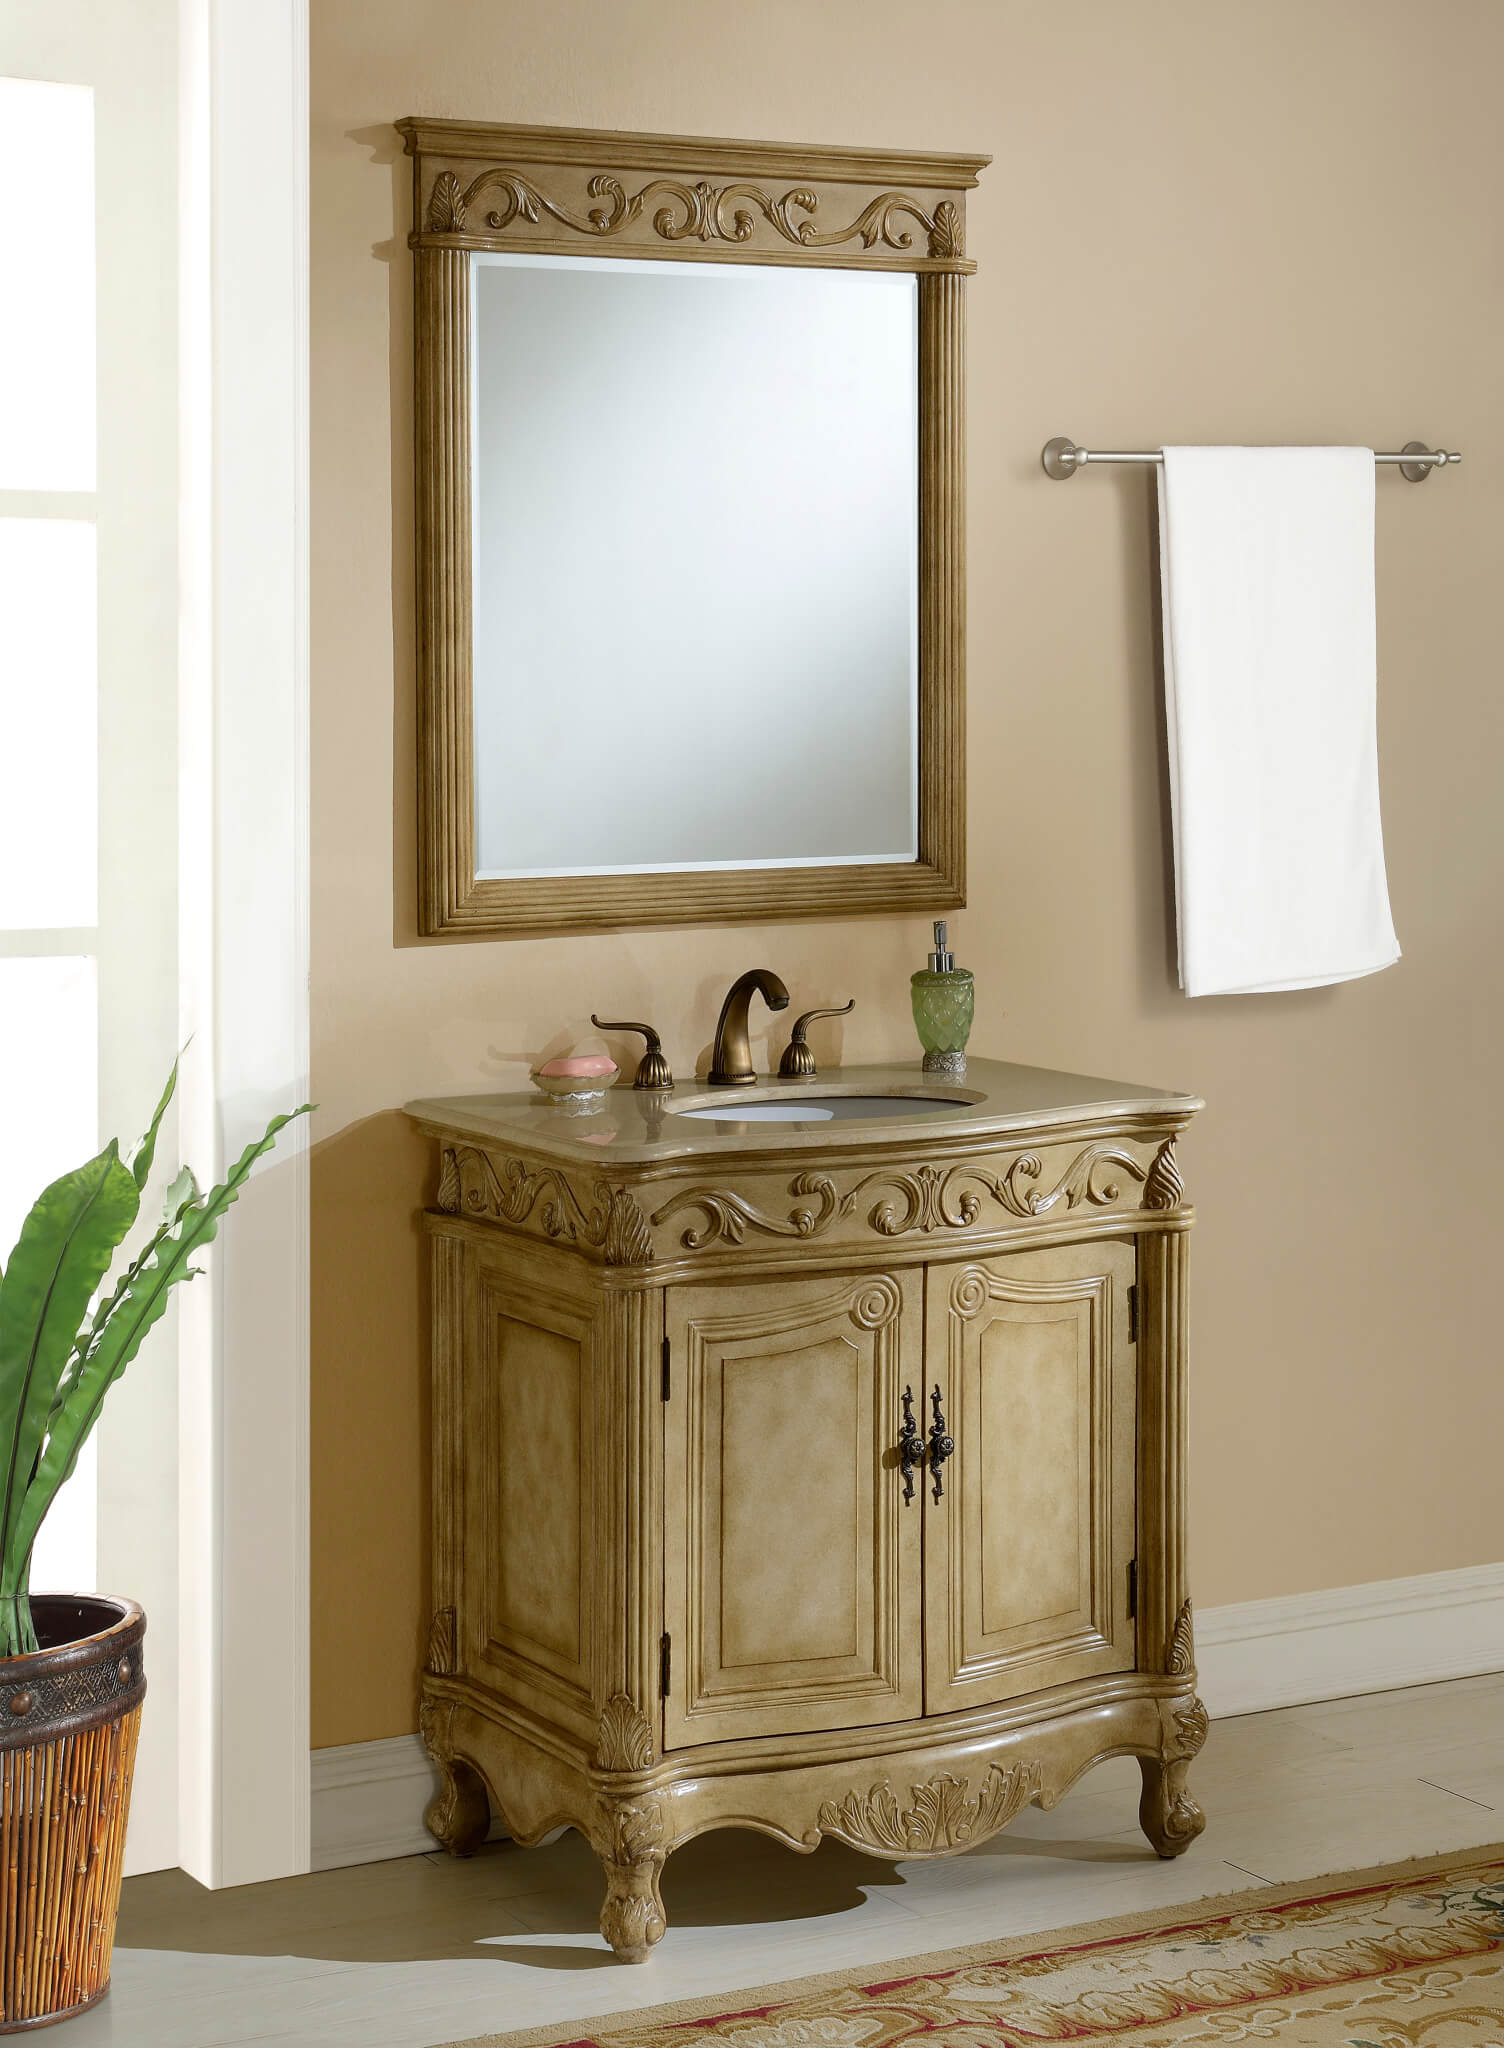 32″ Tuscany Tan Bathroom Vanity